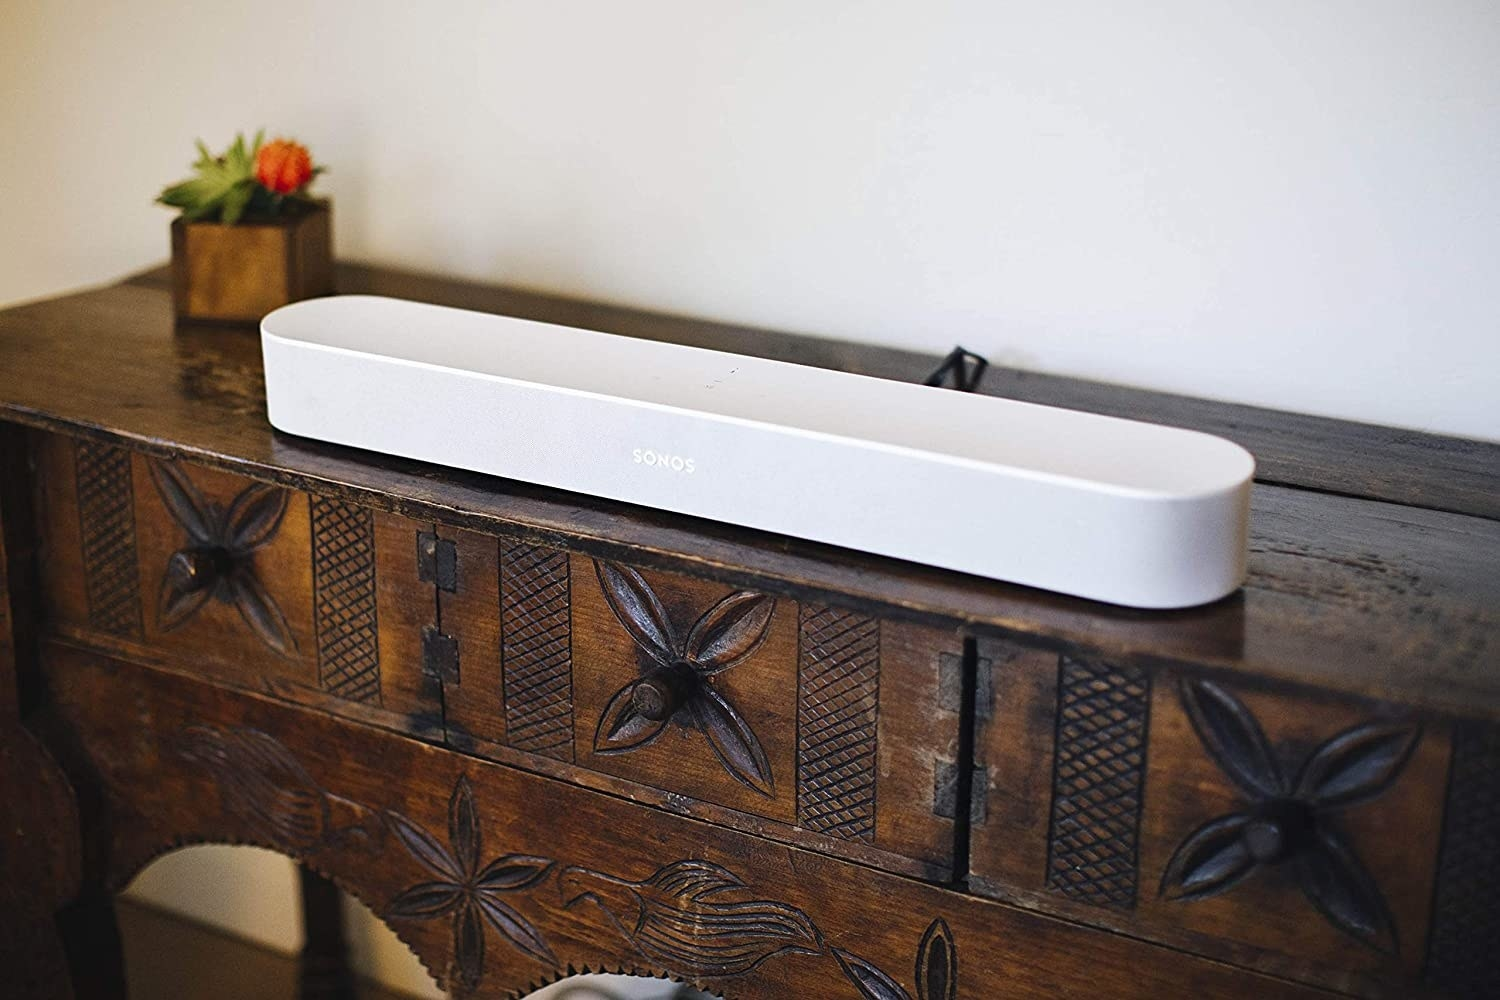 A long sound bar on a wooden TV stand